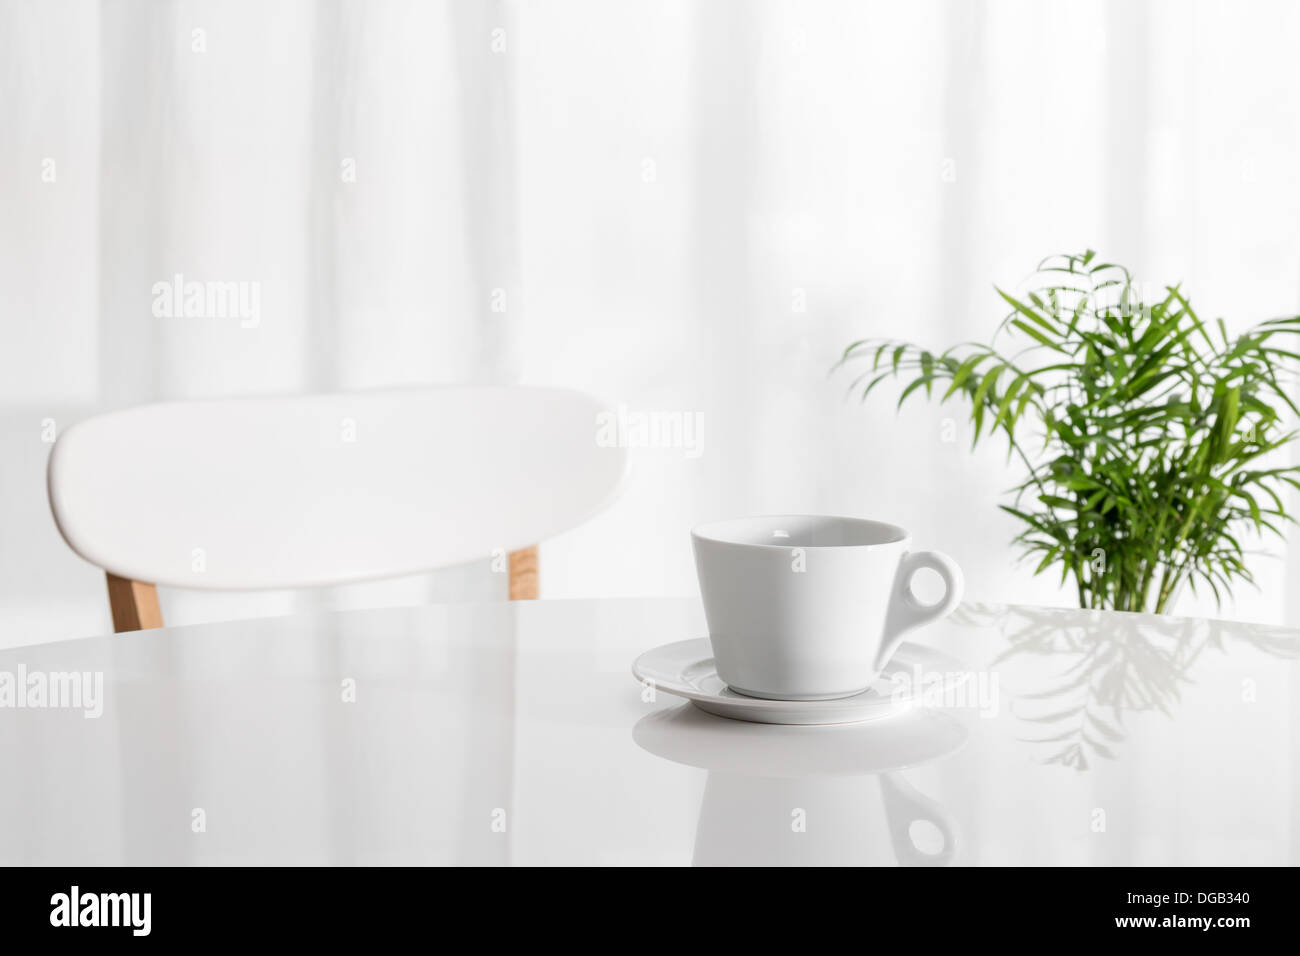 White cup on the kitchen table, with green plant in the background ...